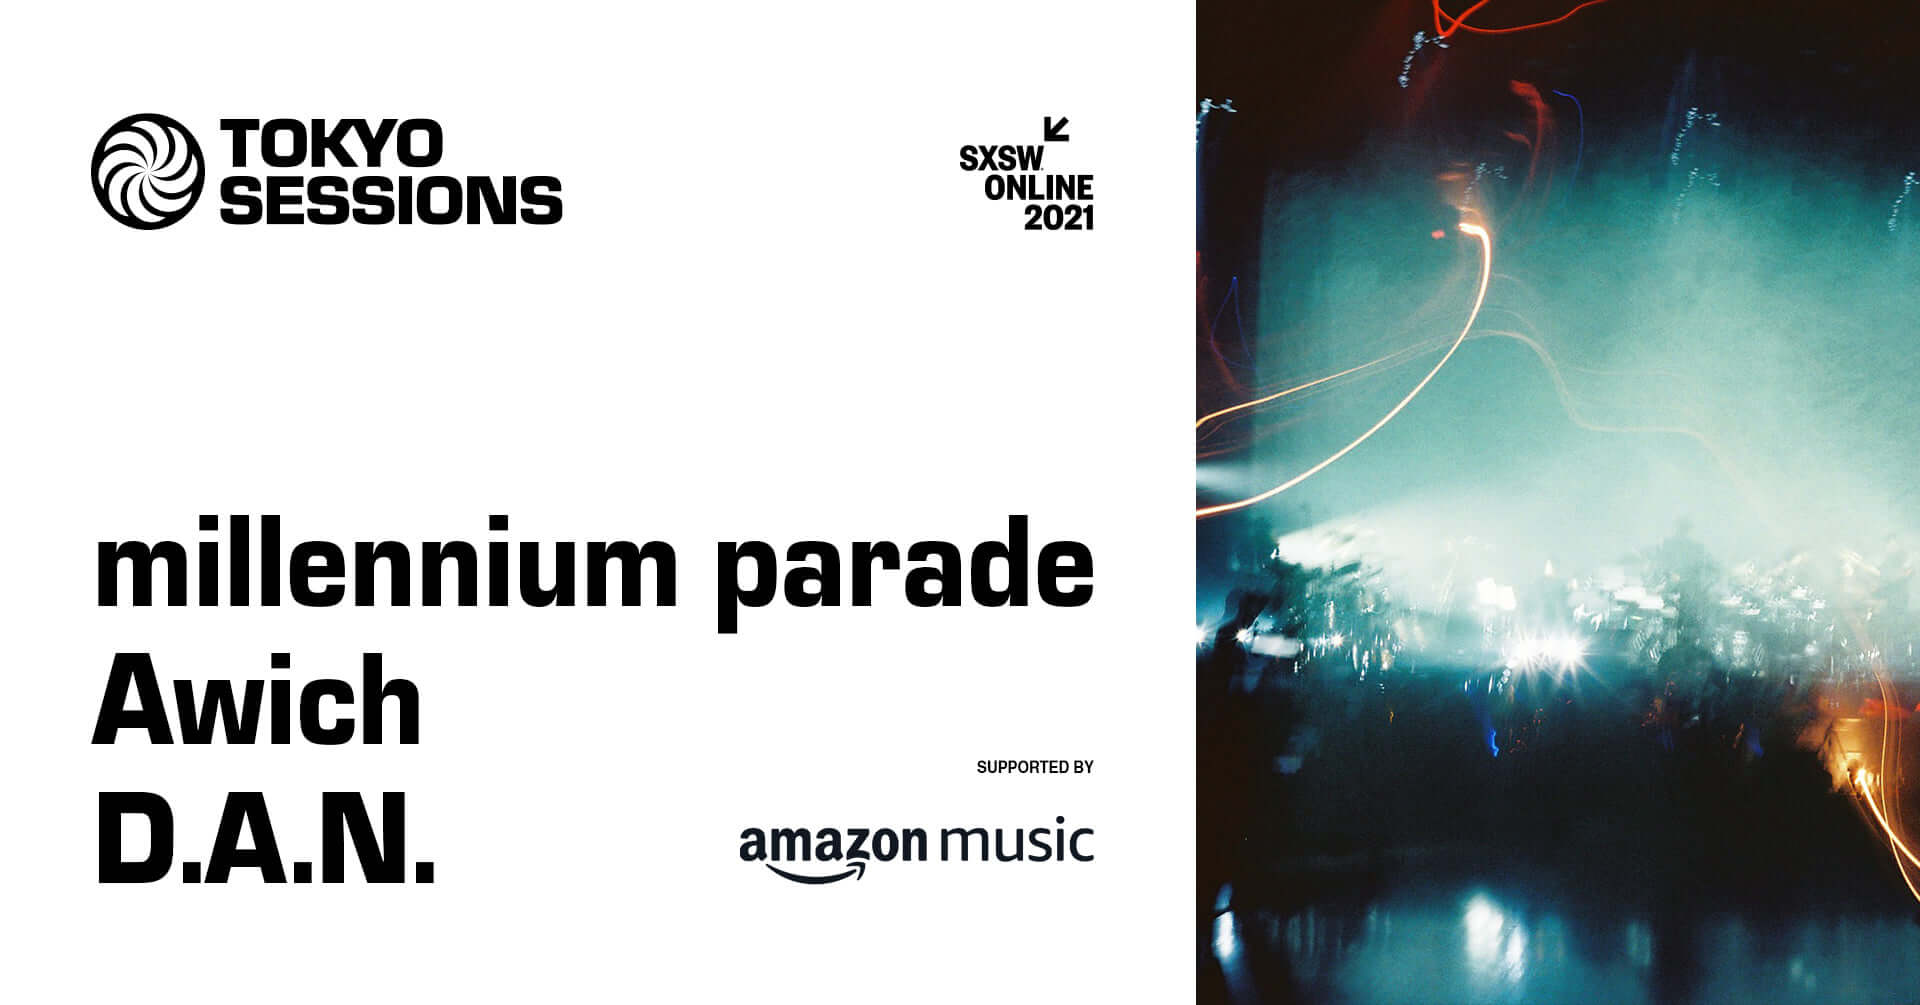 SXSW Online 2021「TOKYO SESSIONS」にmillennium parade、Awich、D.A.N.が出演